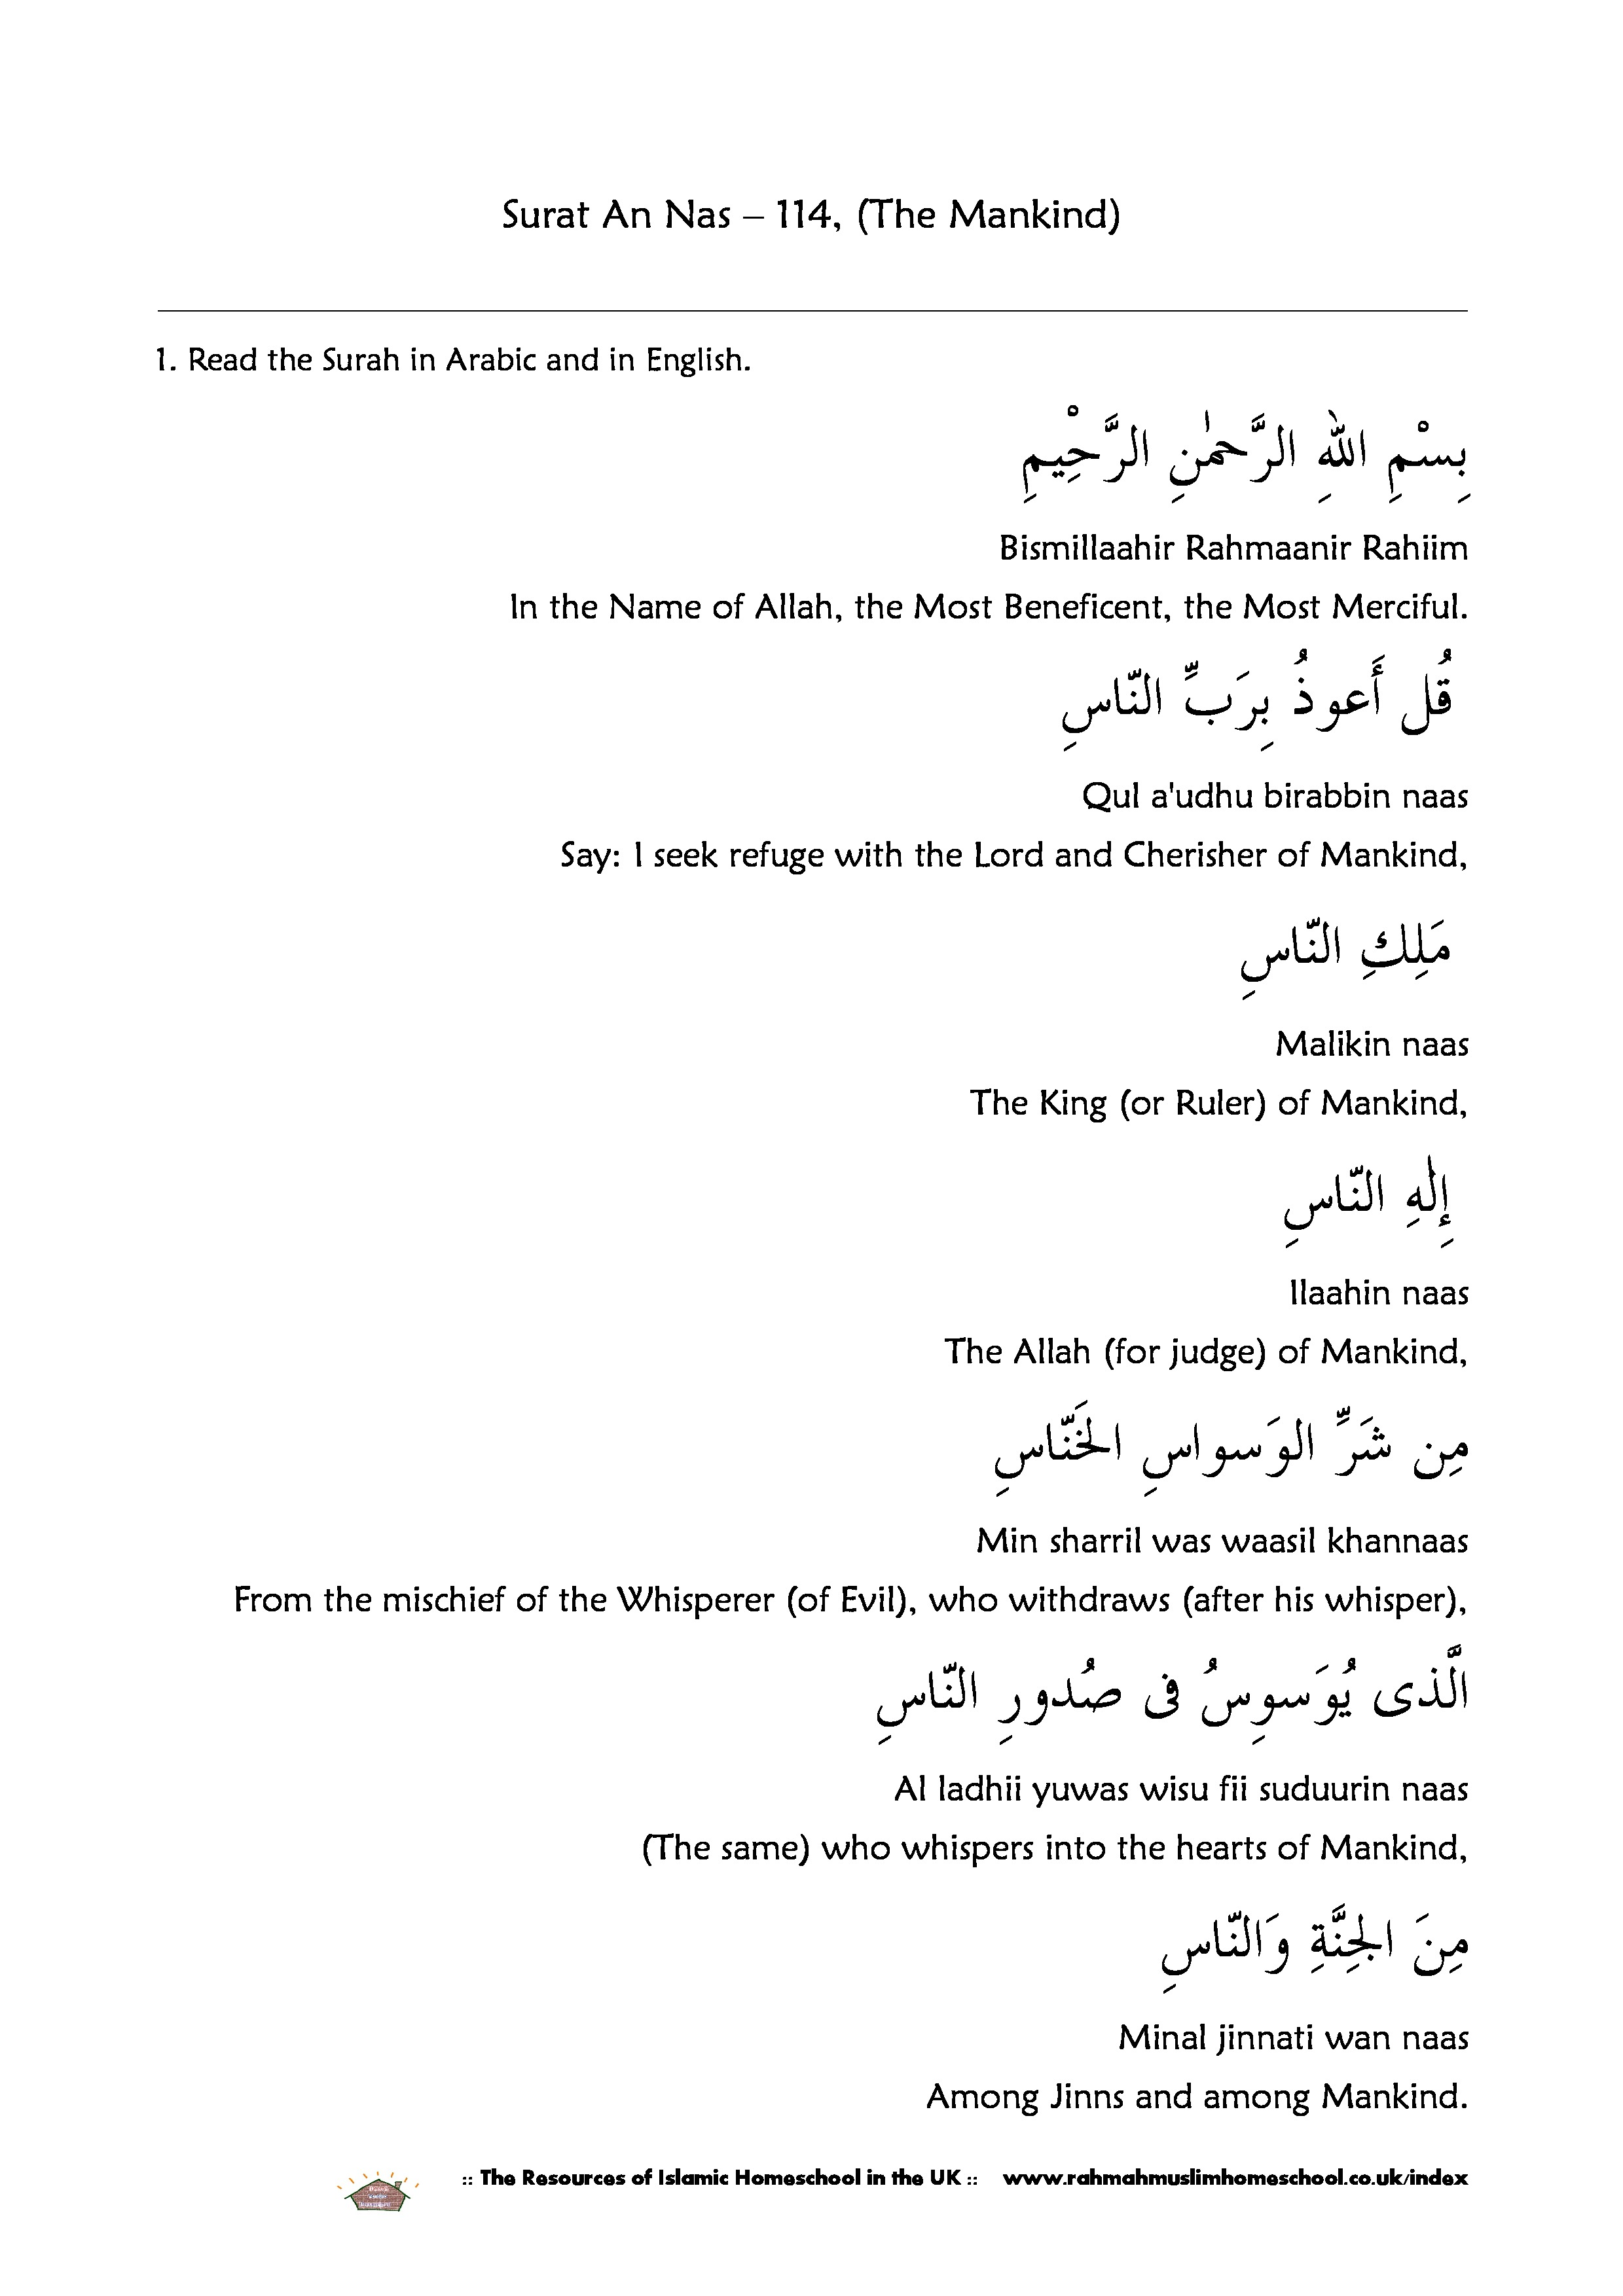 Surah An Nas The Mankind Worksheet on Free Printable Homeschool Worksheets